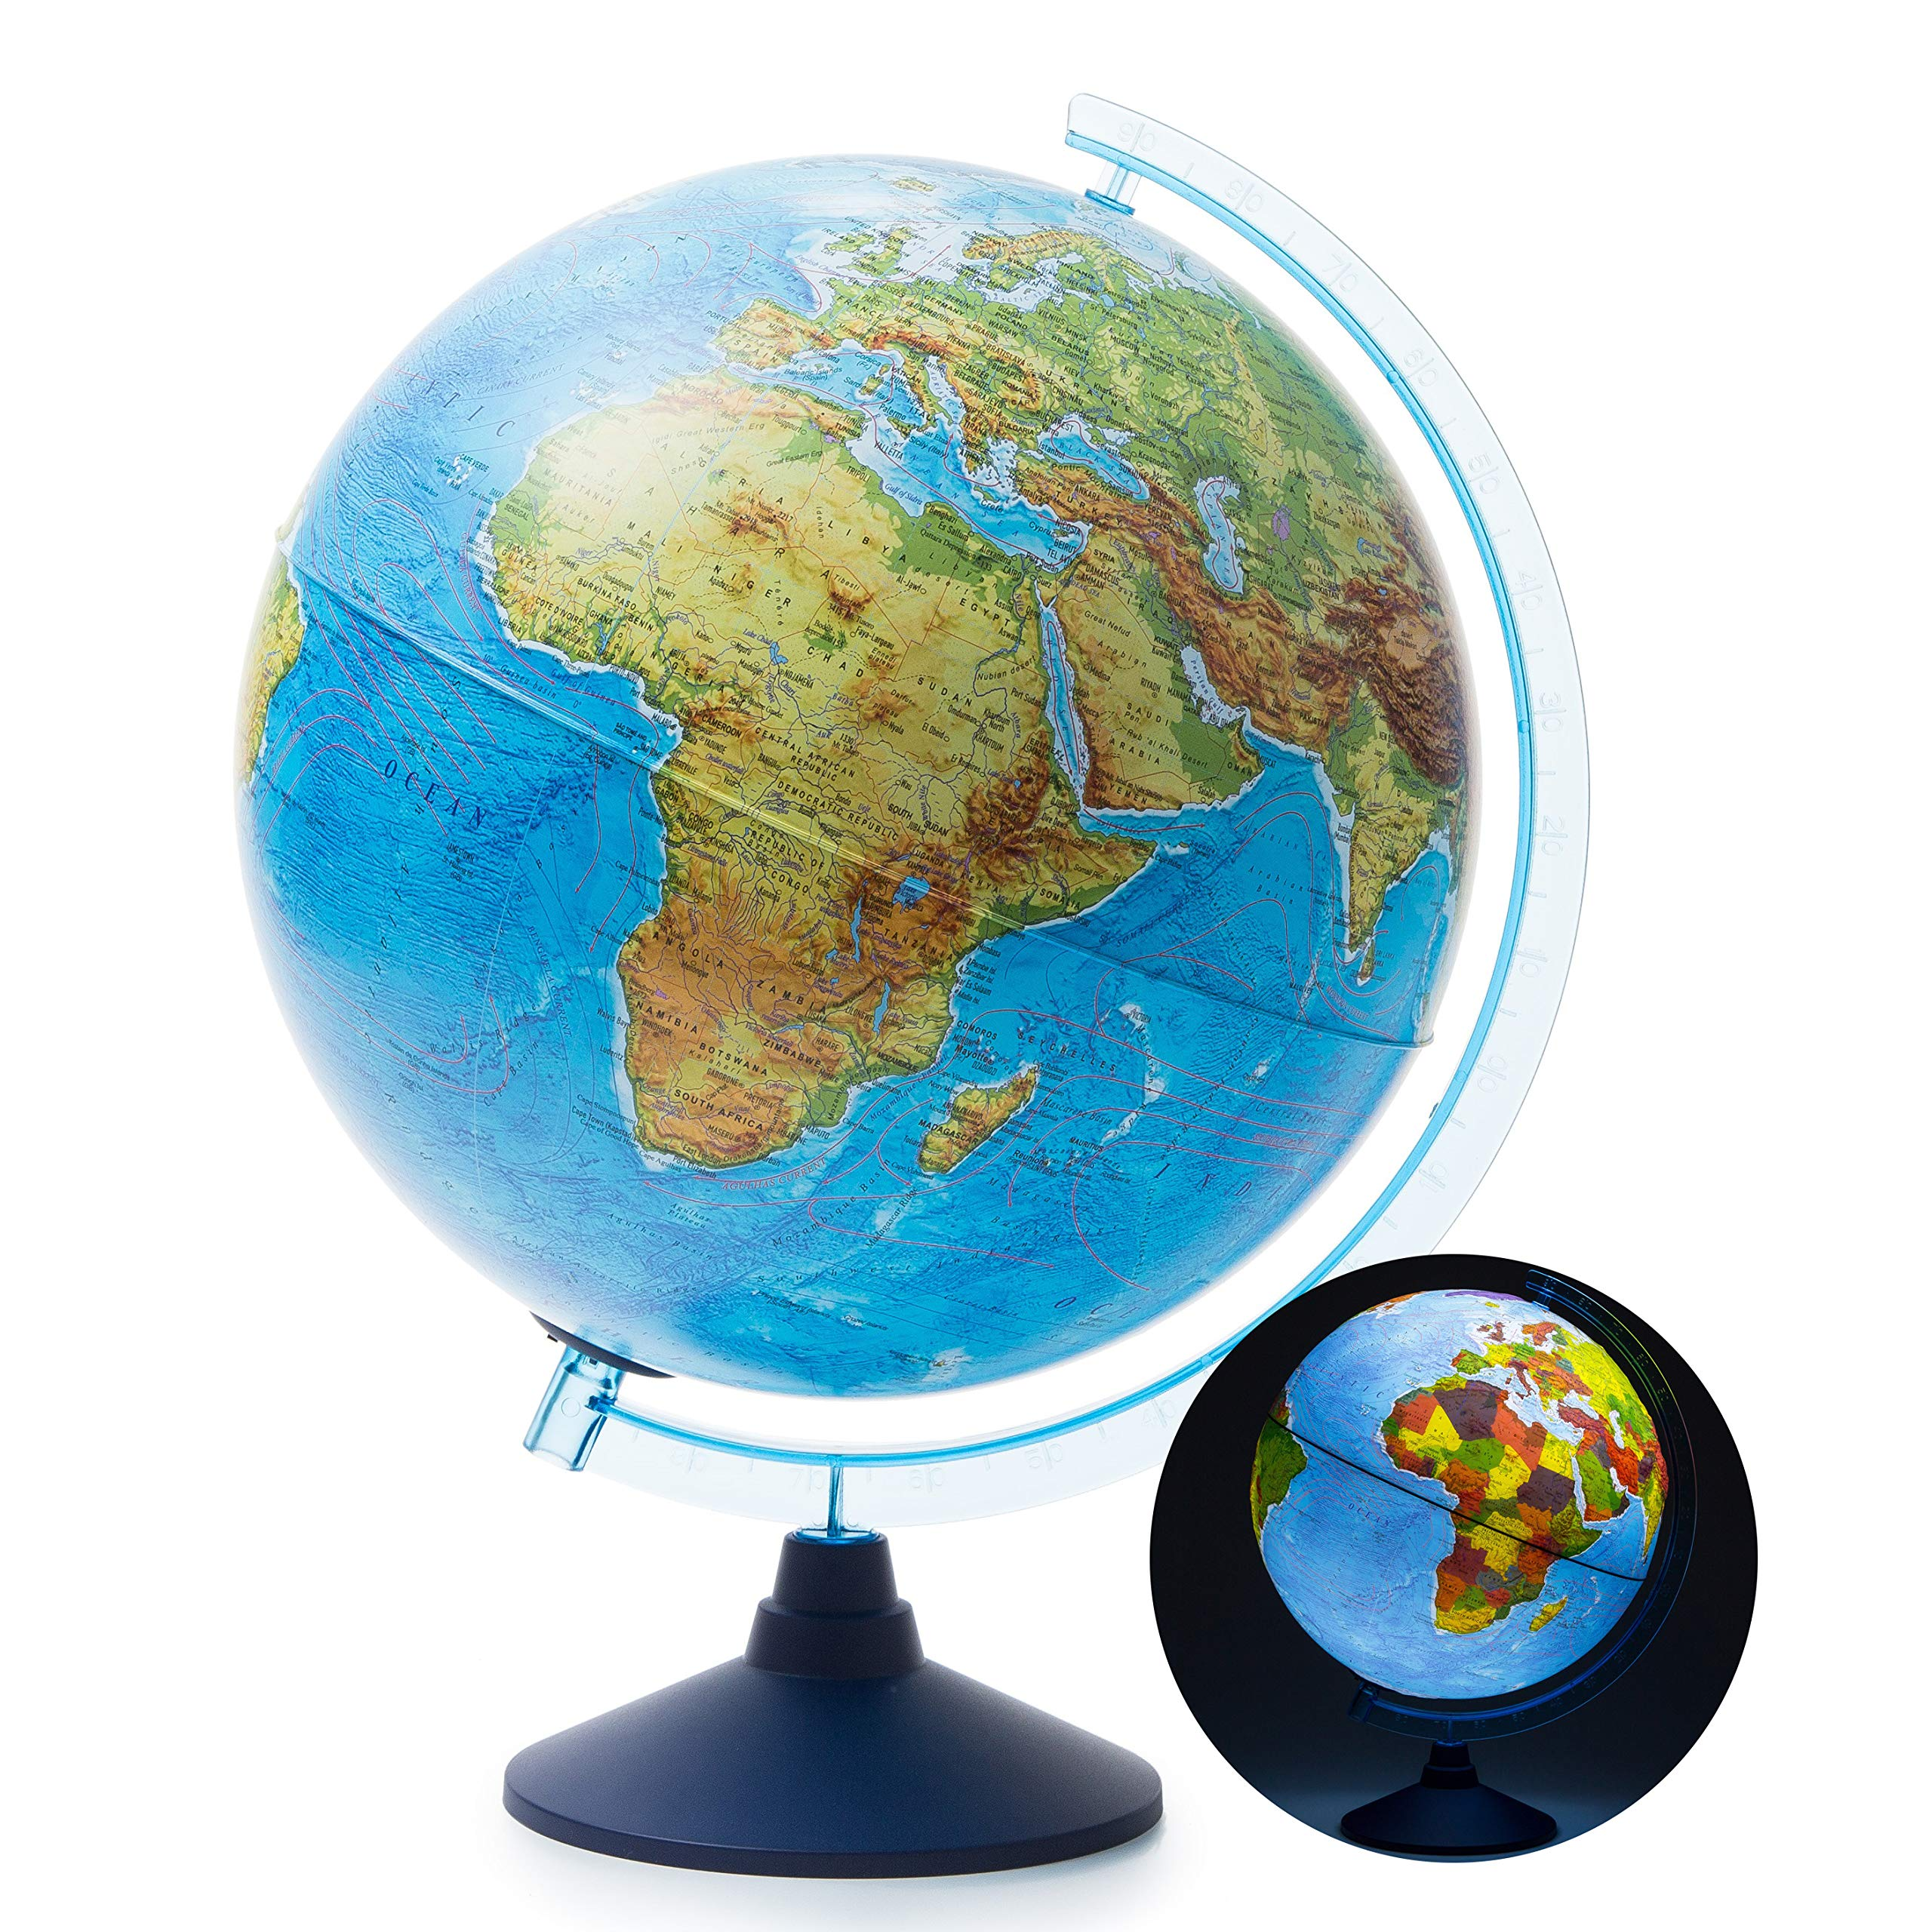 Exerz 12'' / 13'' / 32cm Jumbo Illuminated Globe with Cable Free LED Lighting/ 2 in 1/ Day and Night - Physical/Political Dual Mapping - Topography/Geography/Ridge